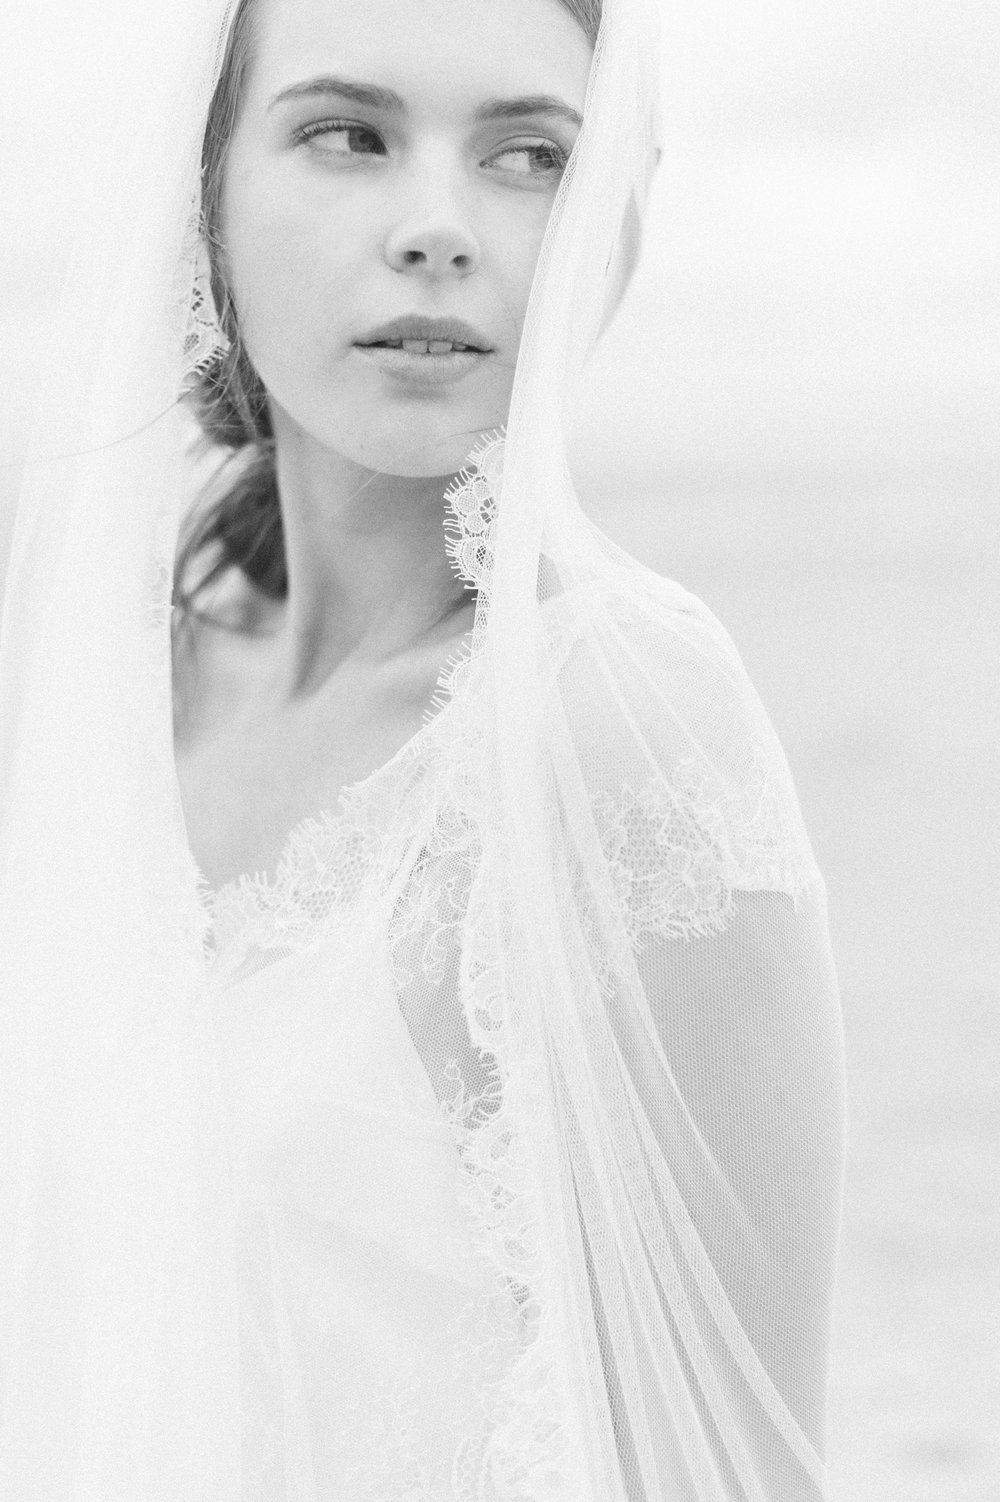 Kate-Beaumont-Wedding-Dresses-Formby-Beach-Emma-Pilkington-41.jpg